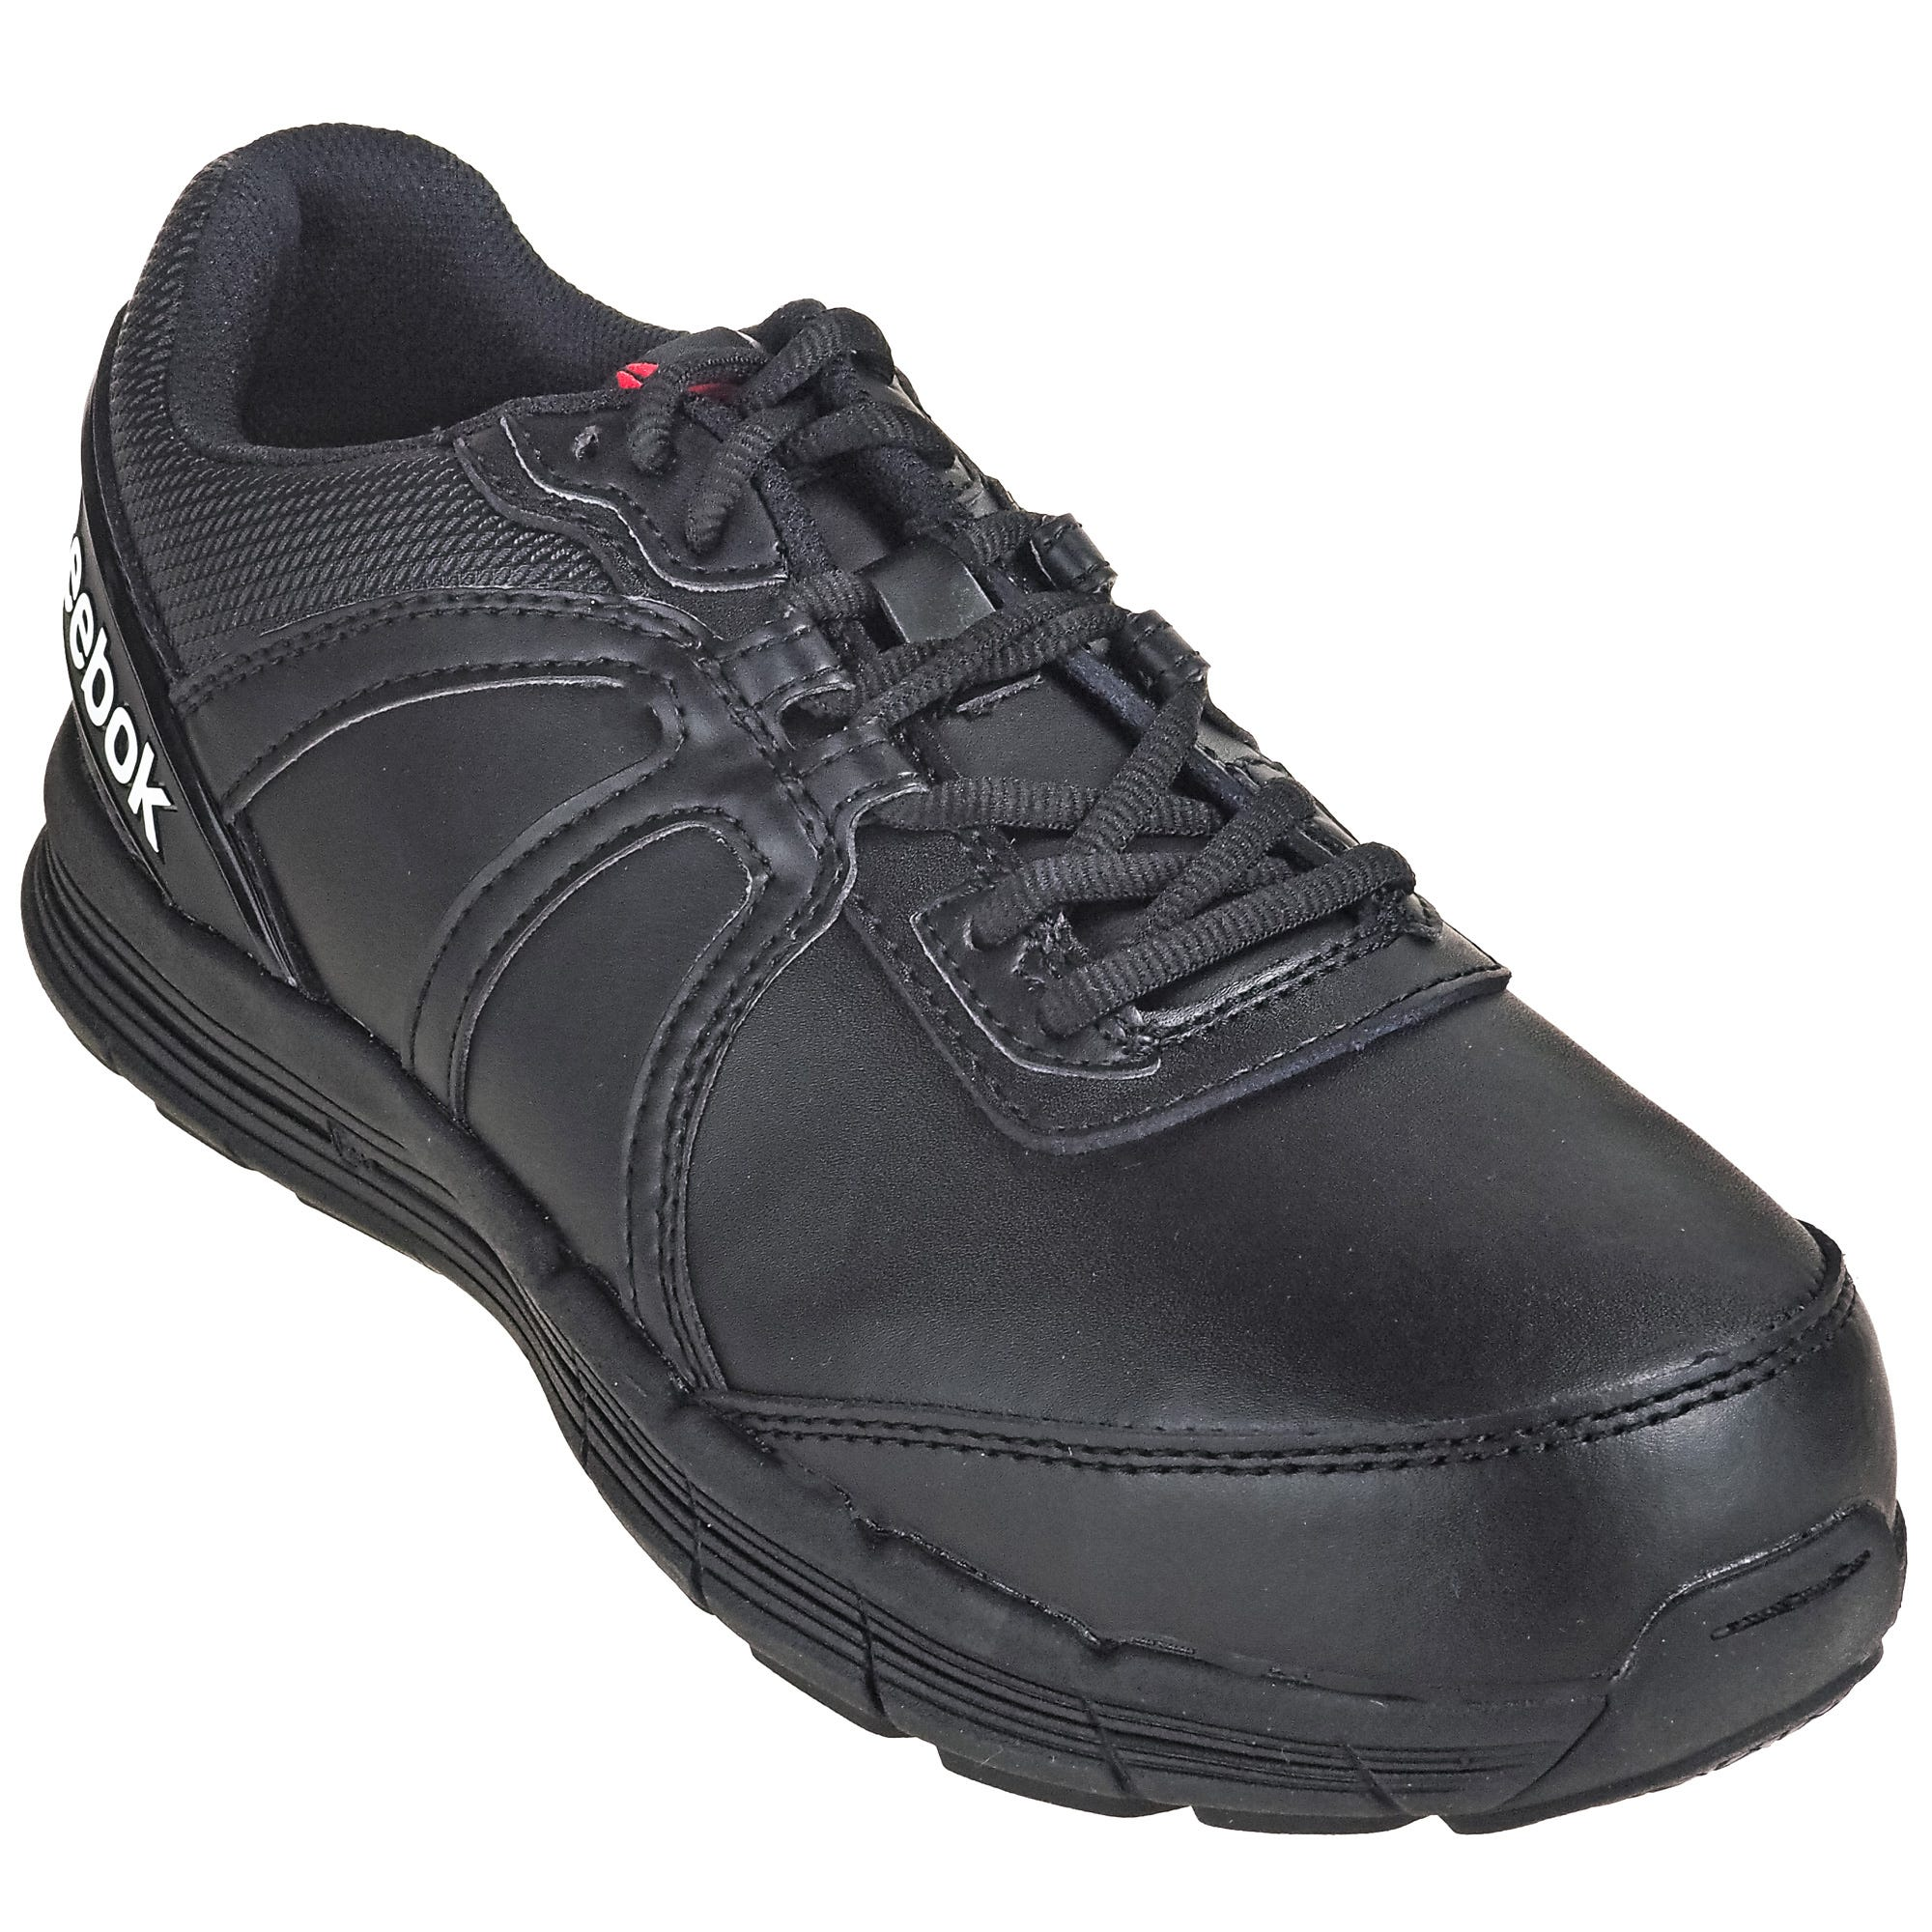 Reebok Steel Toe ESD Black RB3501 Guide Performance Cross Trainers